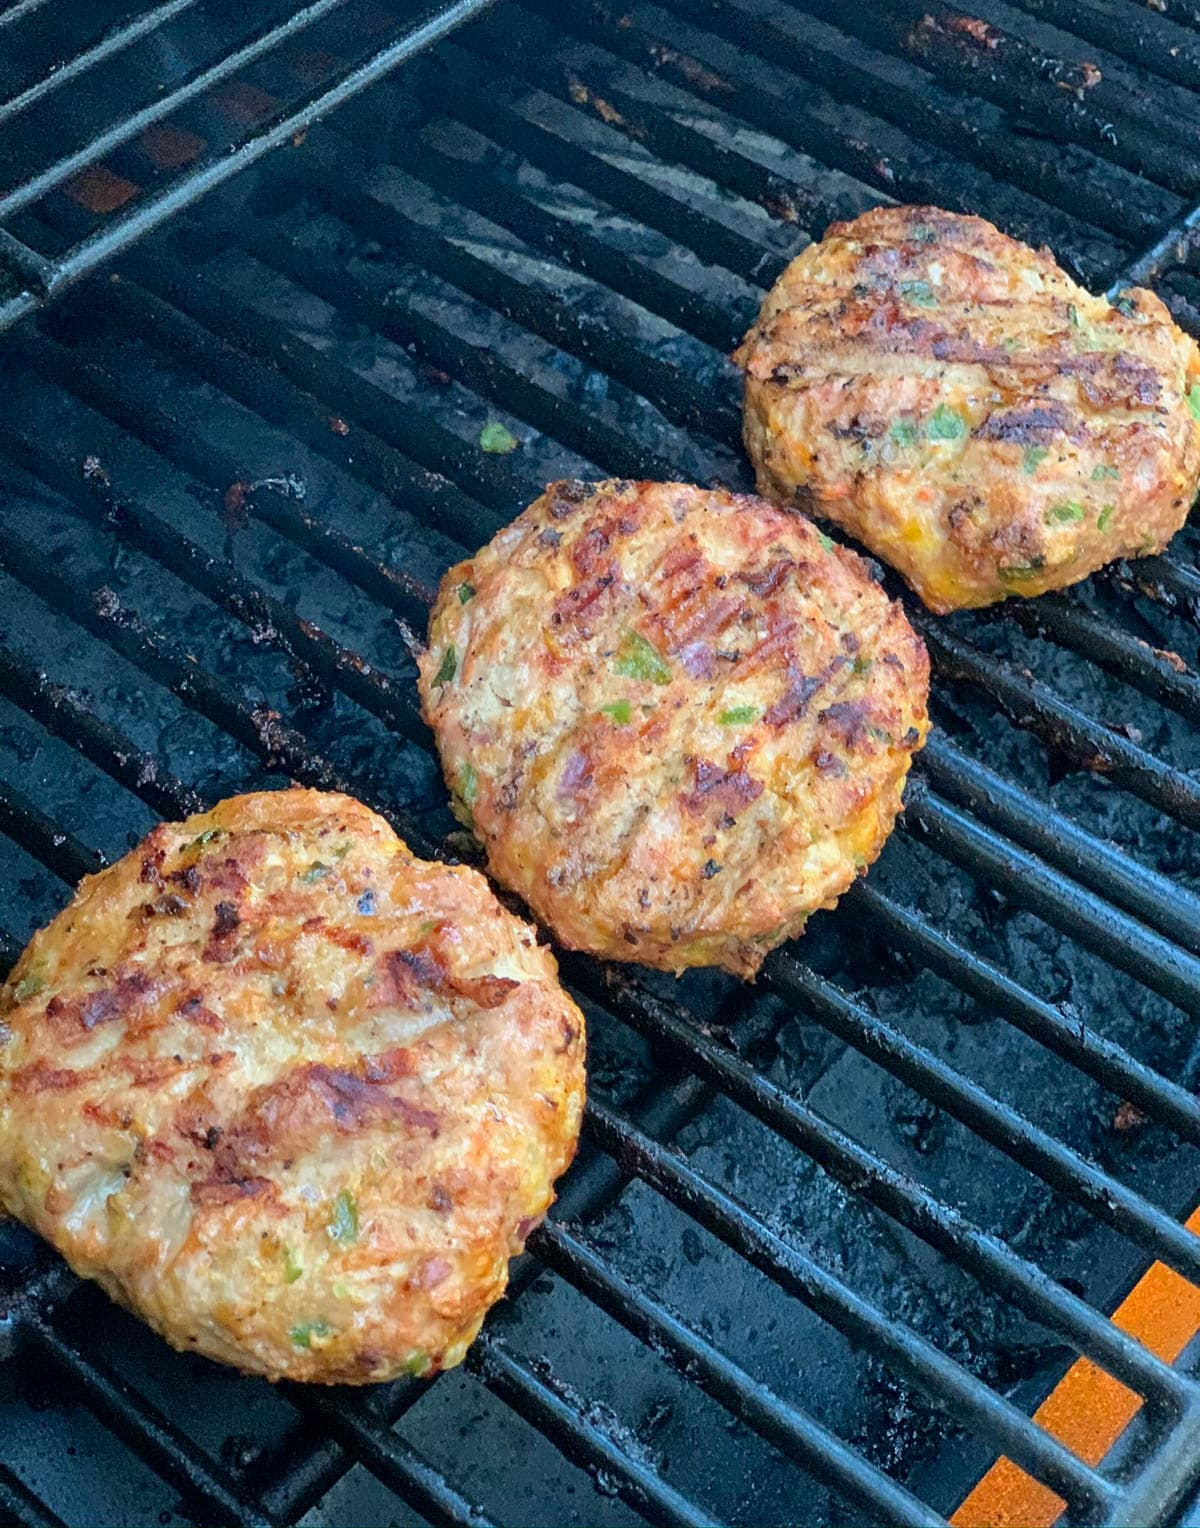 patties on the grill